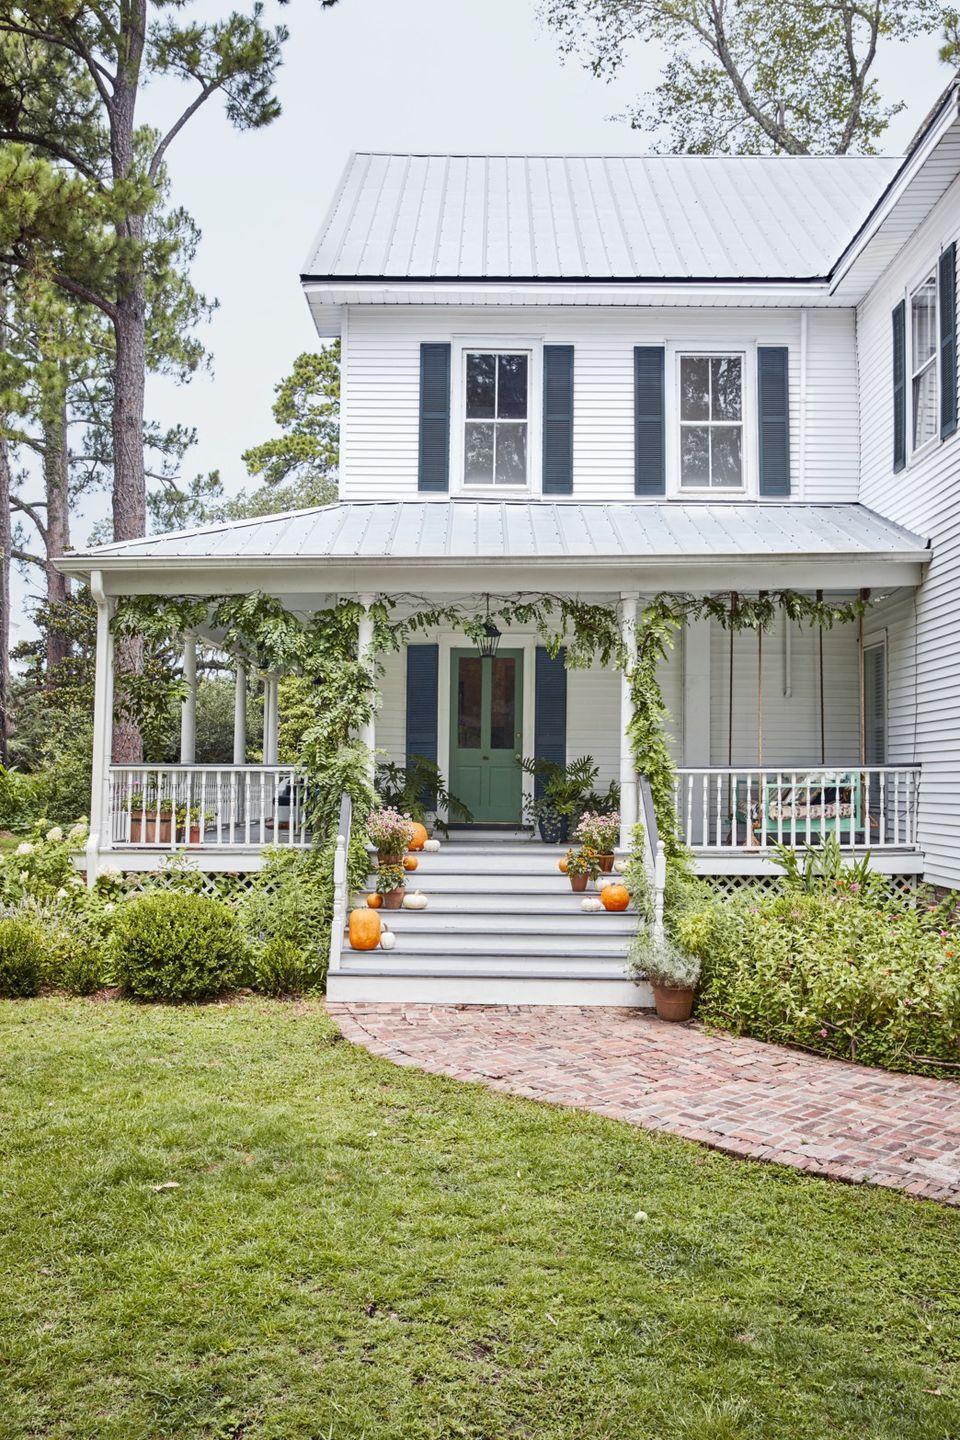 """<p>A soothing shade of green will look gorgeous on your front porch throughout each season.</p><p><a class=""""link rapid-noclick-resp"""" href=""""https://go.redirectingat.com?id=74968X1596630&url=https%3A%2F%2Fwww.farrow-ball.com%2Fen-us%2Fpaint-colours%2Farsenic&sref=https%3A%2F%2Fwww.countryliving.com%2Fhome-design%2Fcolor%2Fg31158913%2Ffront-door-colors%2F"""" rel=""""nofollow noopener"""" target=""""_blank"""" data-ylk=""""slk:SHOP ARSENIC GREEN BY FARROW AND BALL"""">SHOP ARSENIC GREEN BY FARROW AND BALL</a></p>"""